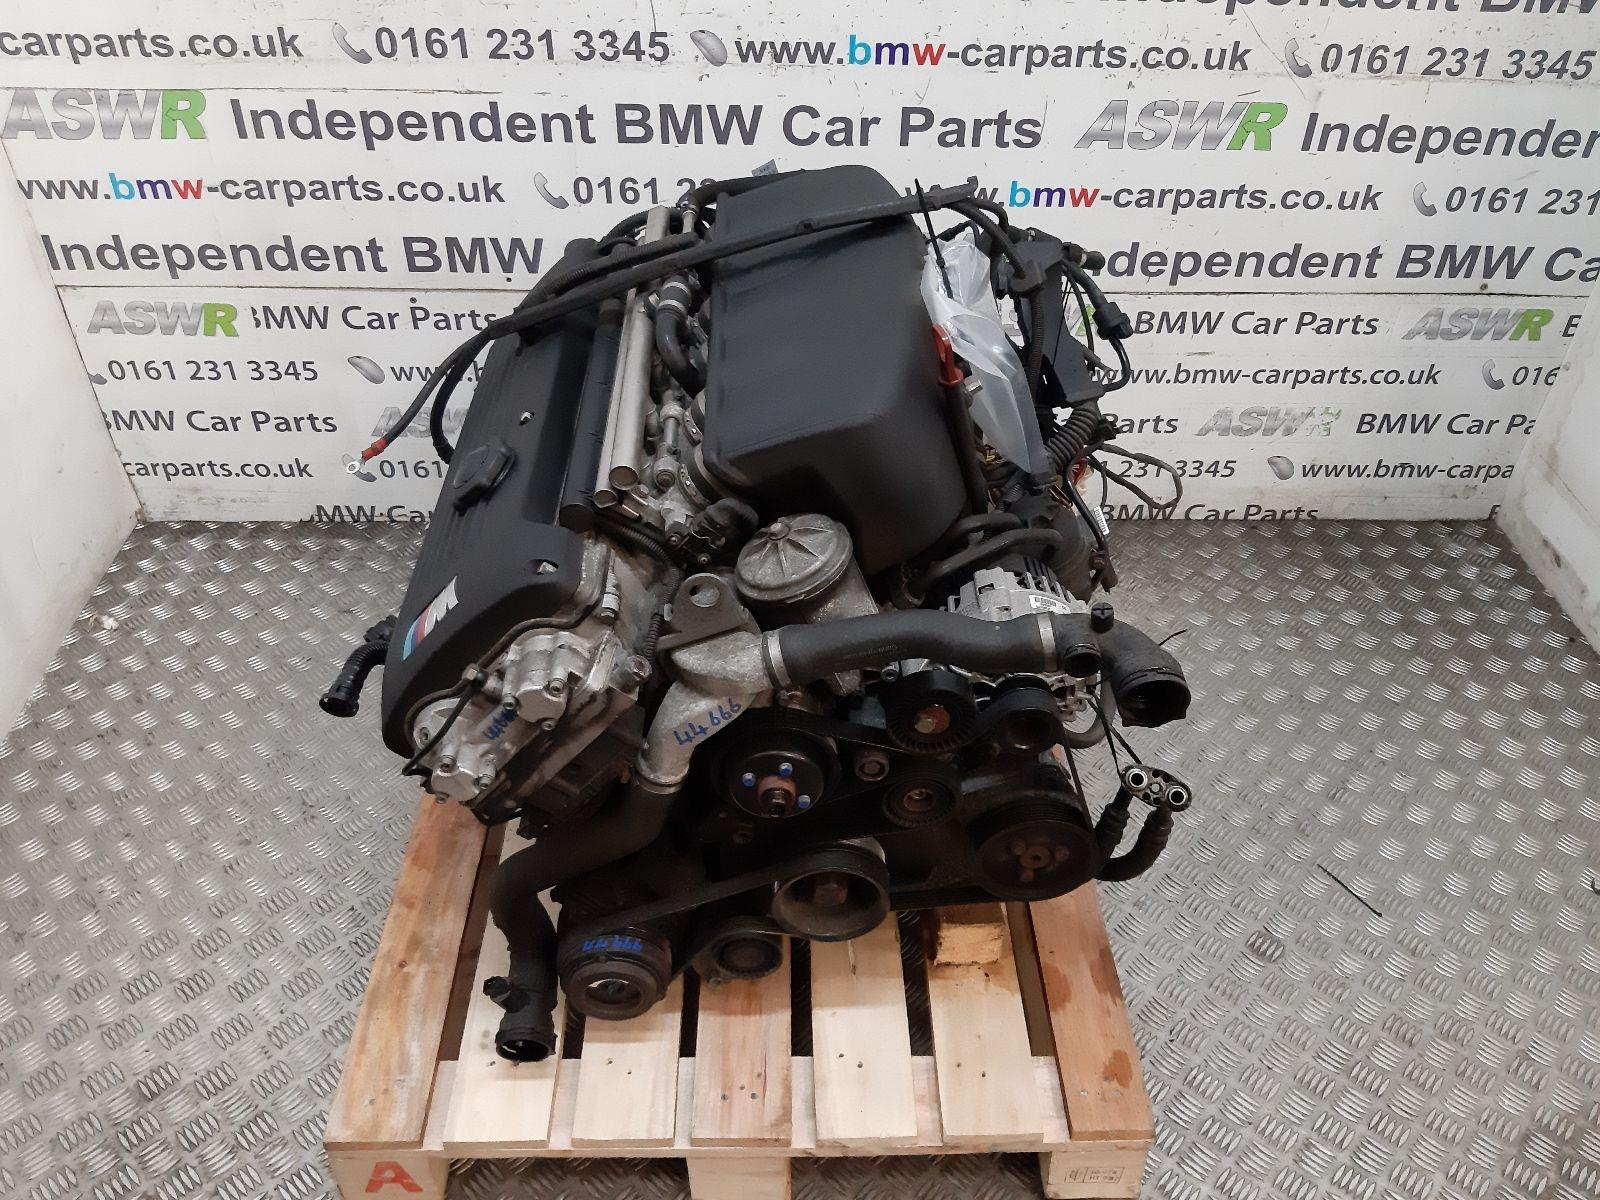 BMW E46 M3 S54 Engine 11000304348 breaking for used and spare parts